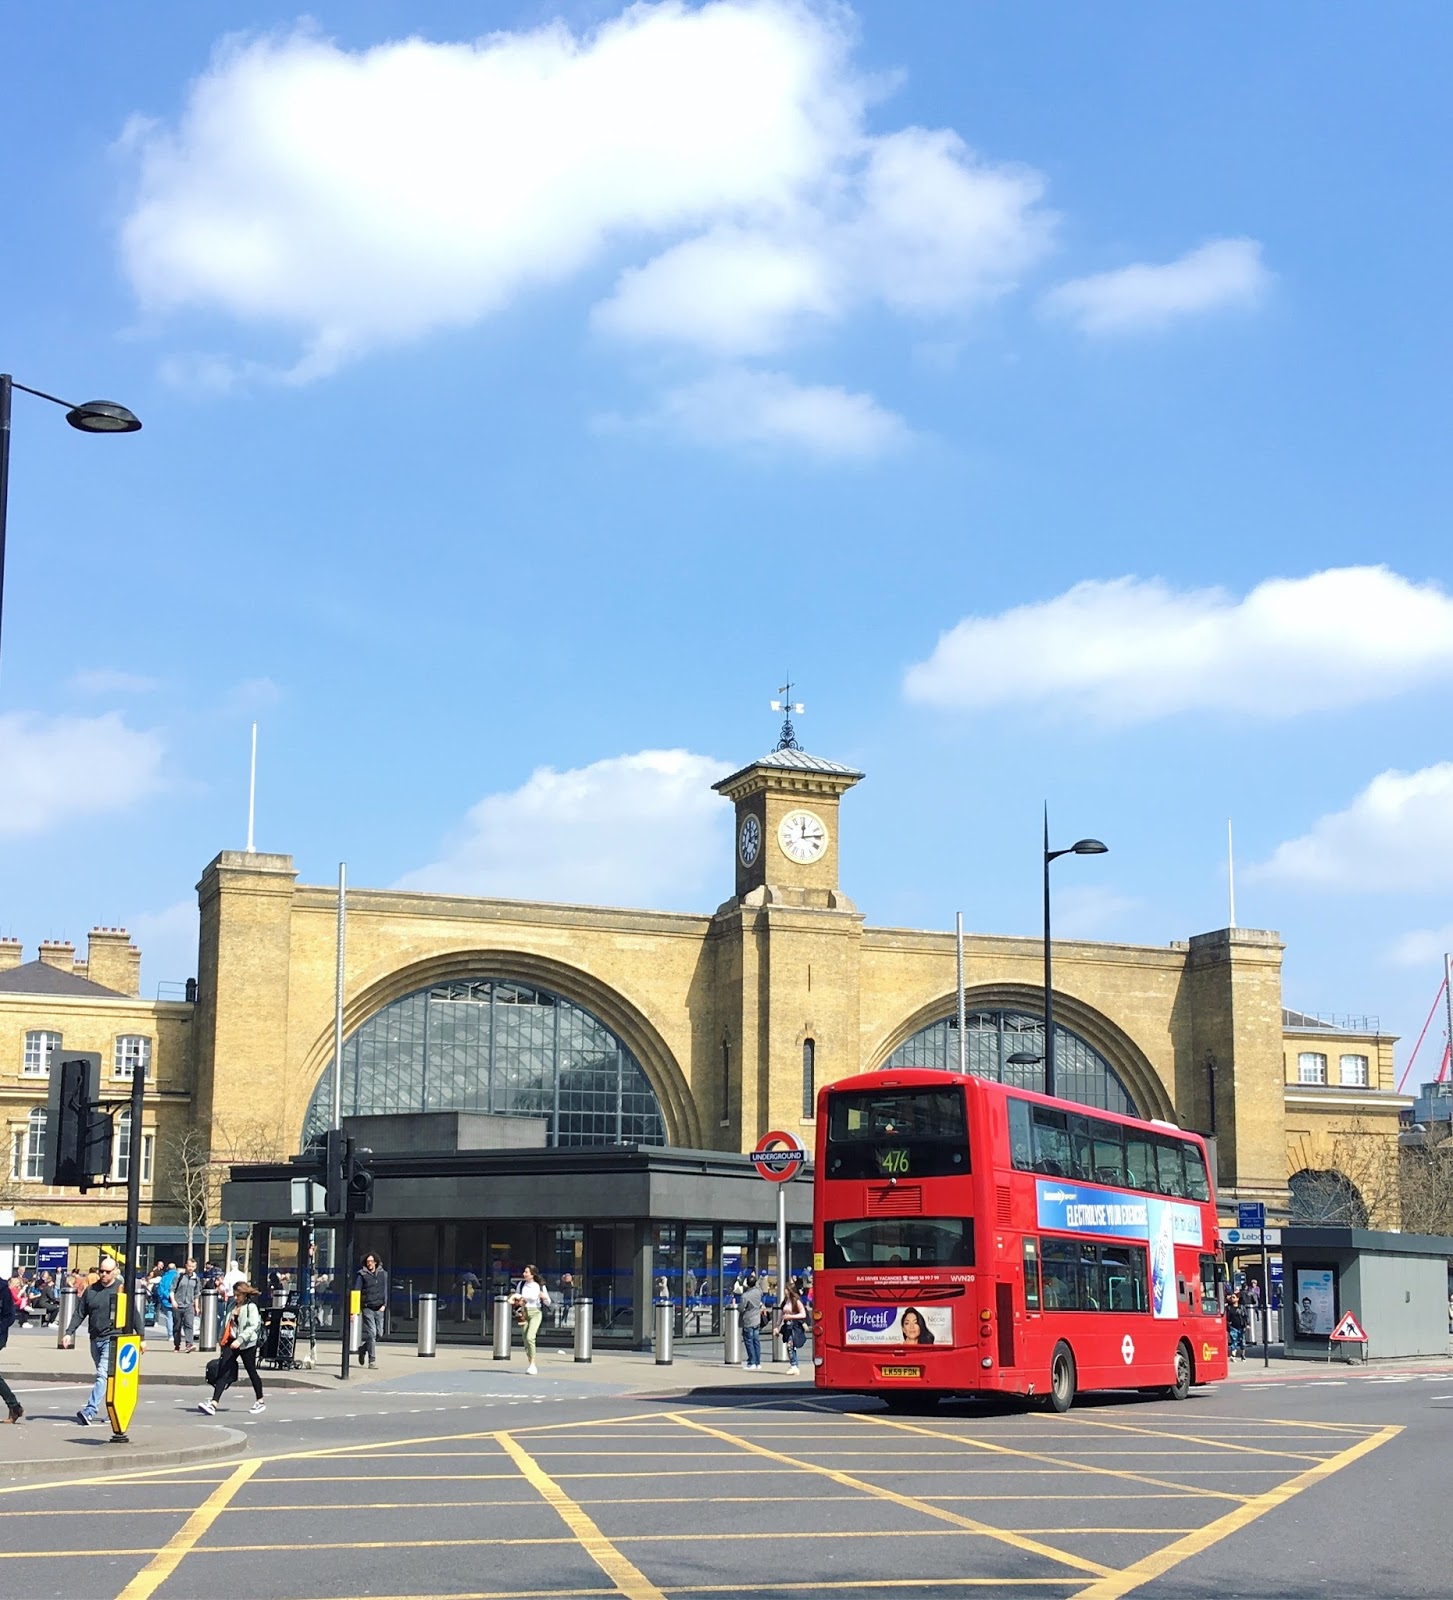 Kings Cross station can be seen, the sky is blue and a red double decker bus is visible.